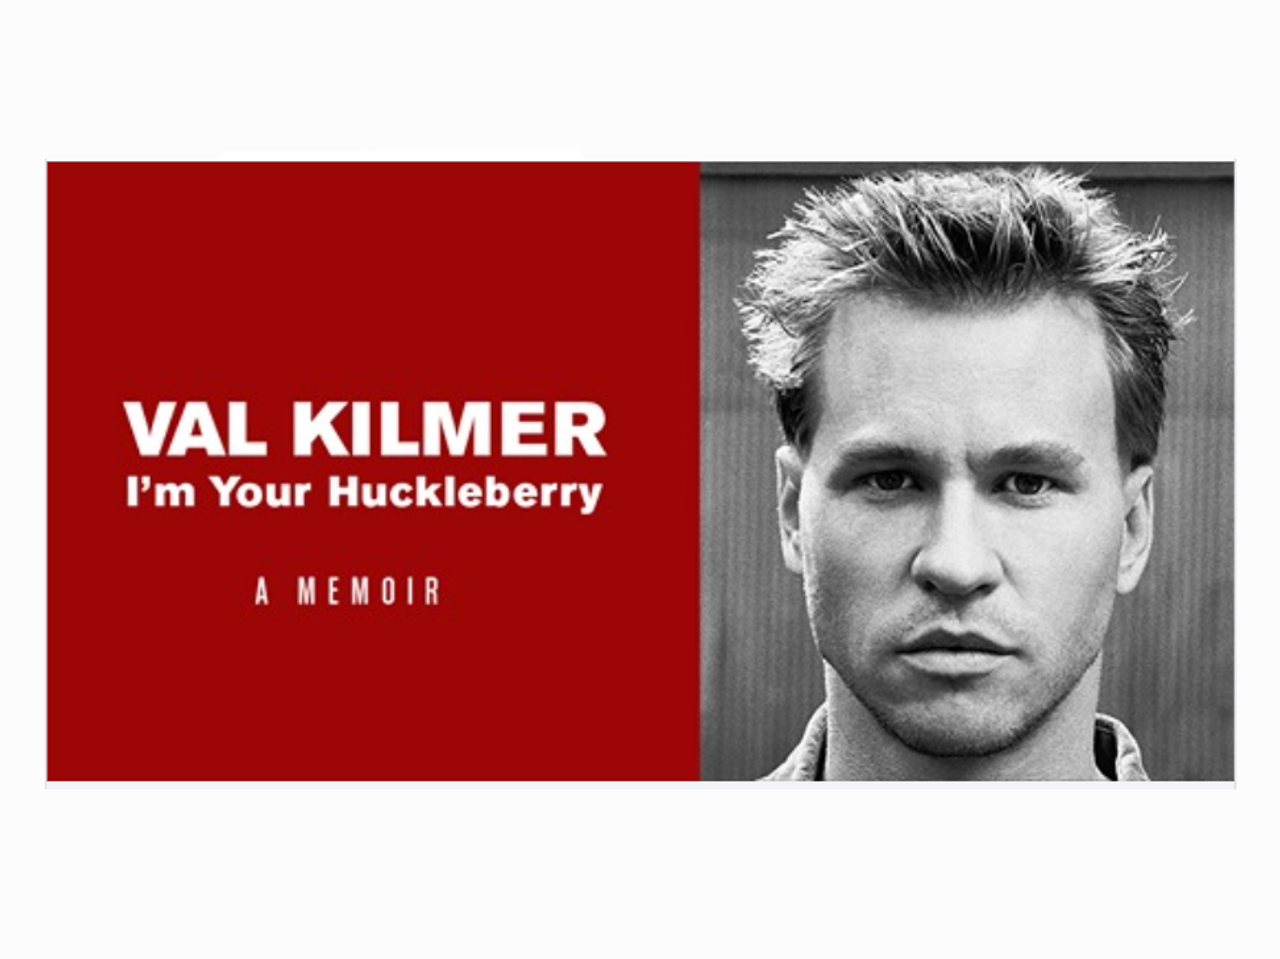 It's here! - I'm Your Huckleberry: A memoir